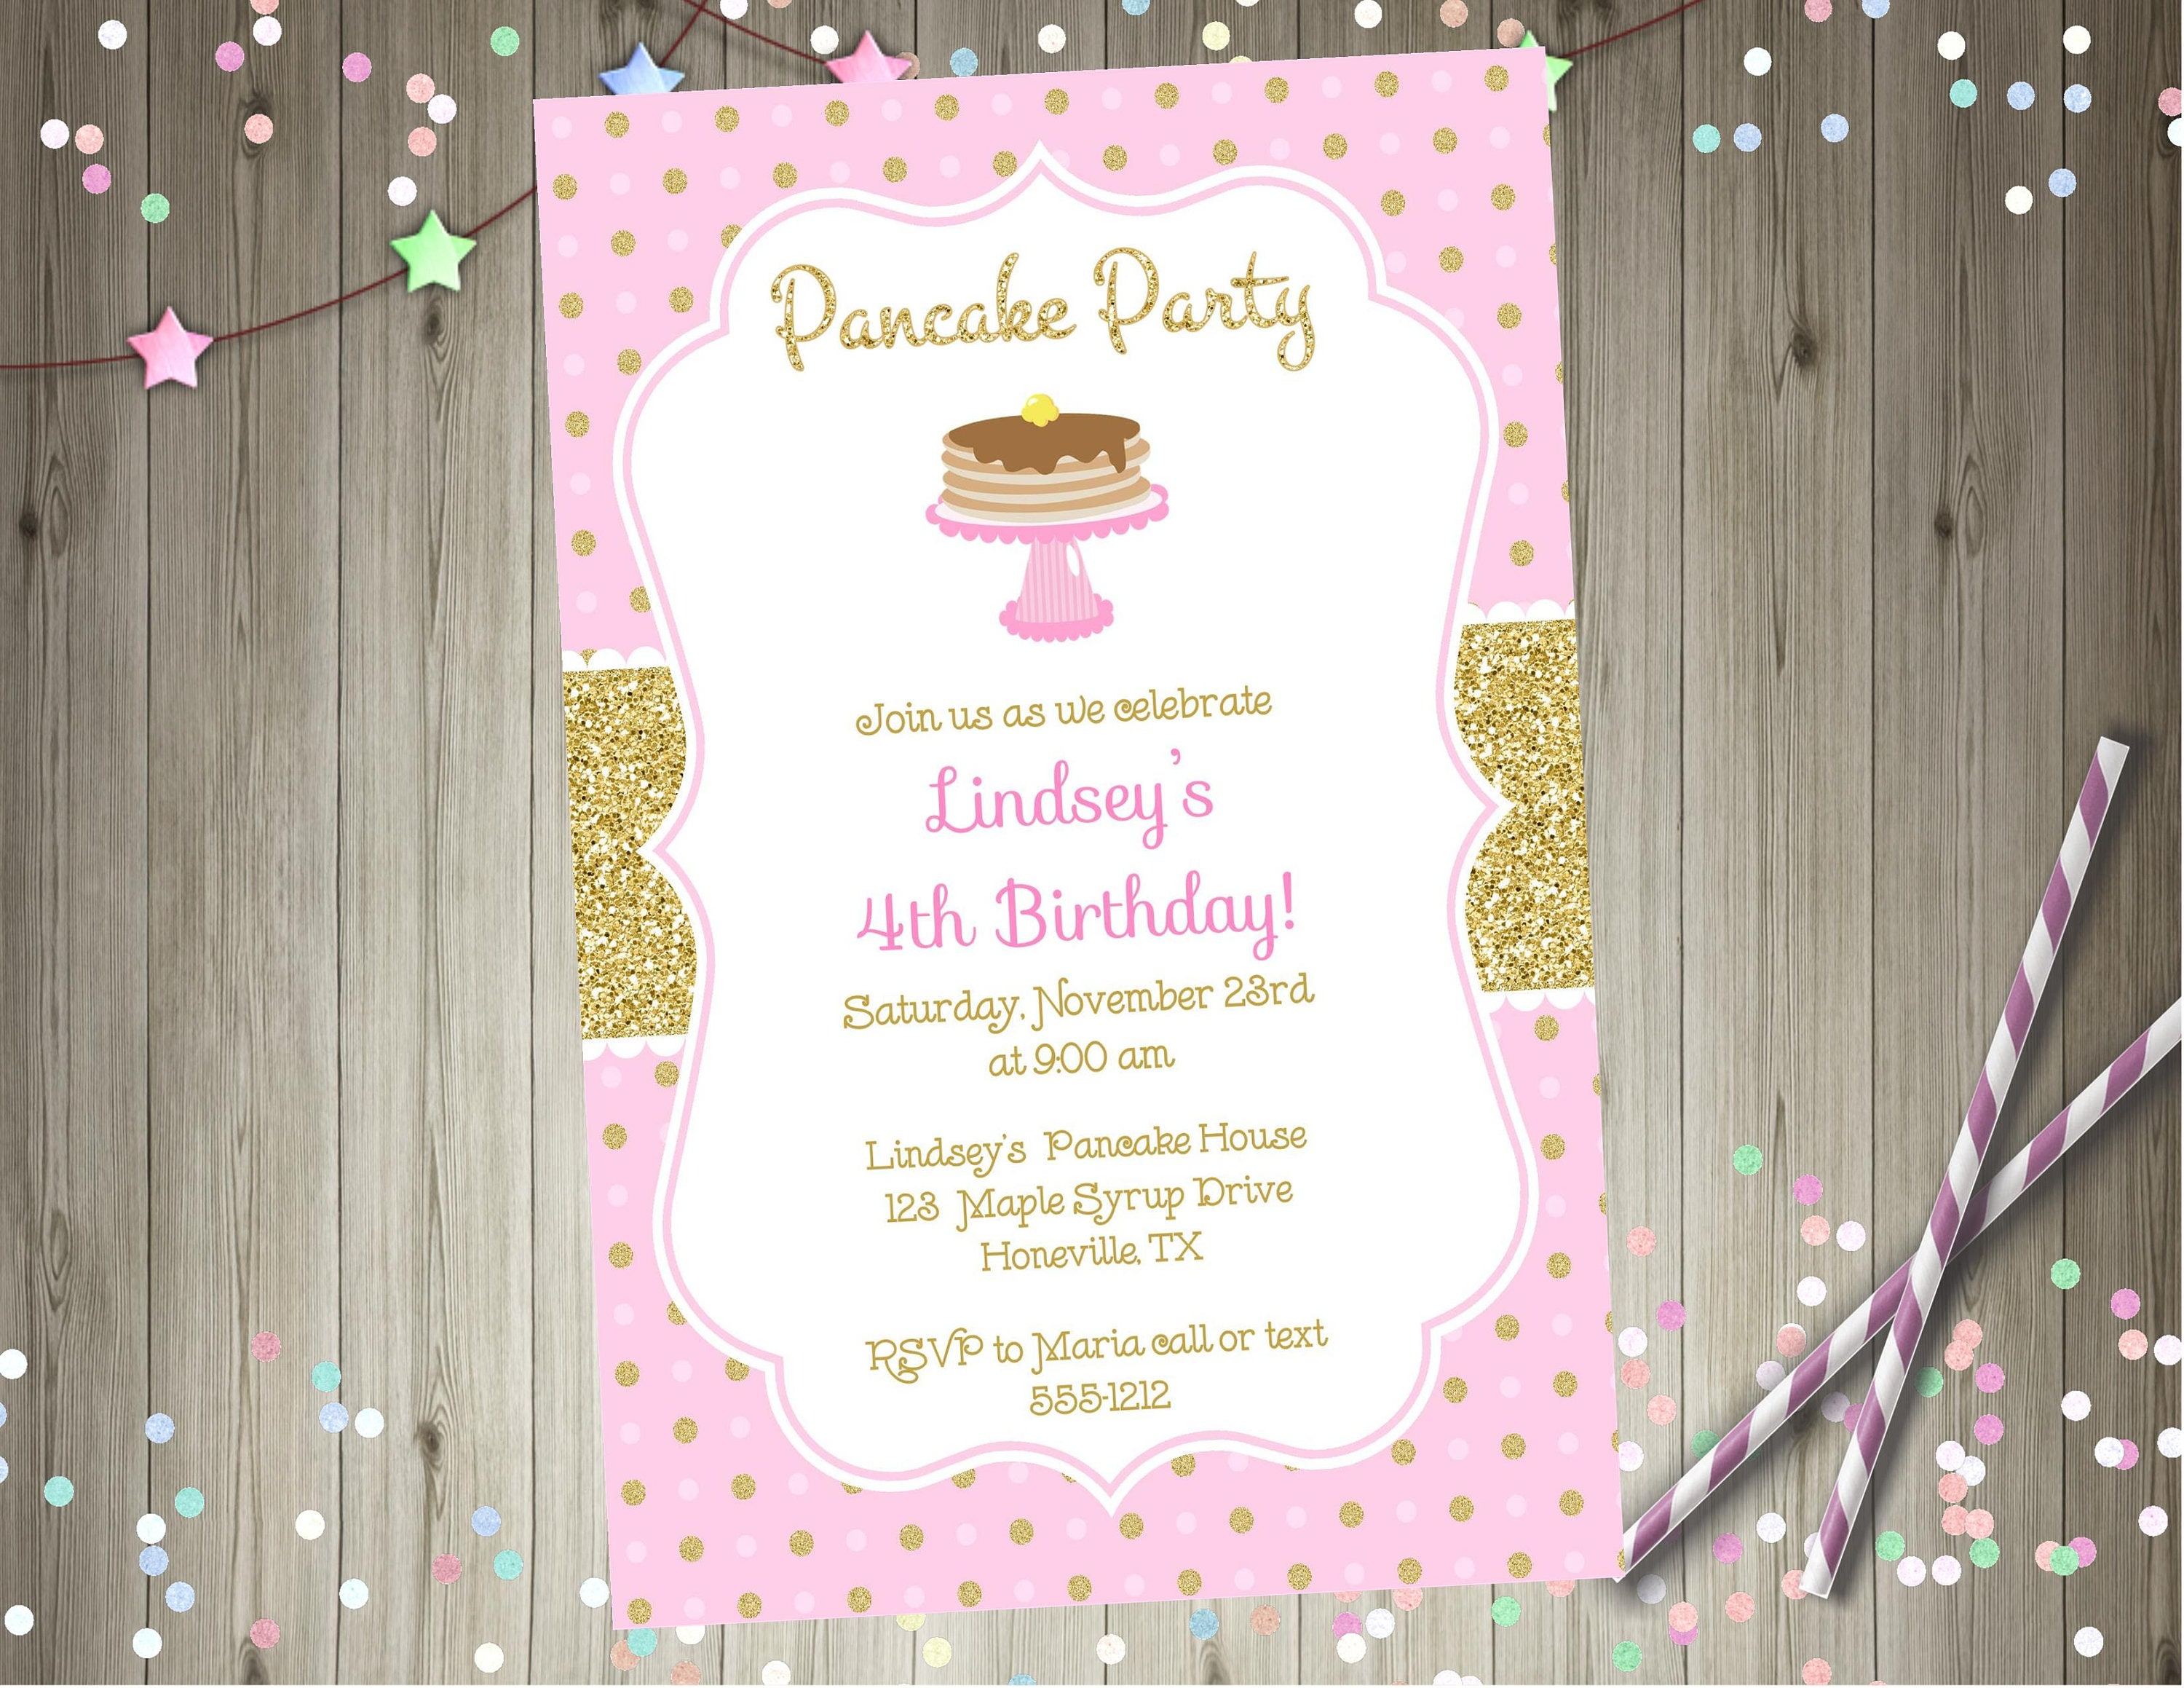 Pancake party birthday invitation pink and gold pancake party | Etsy